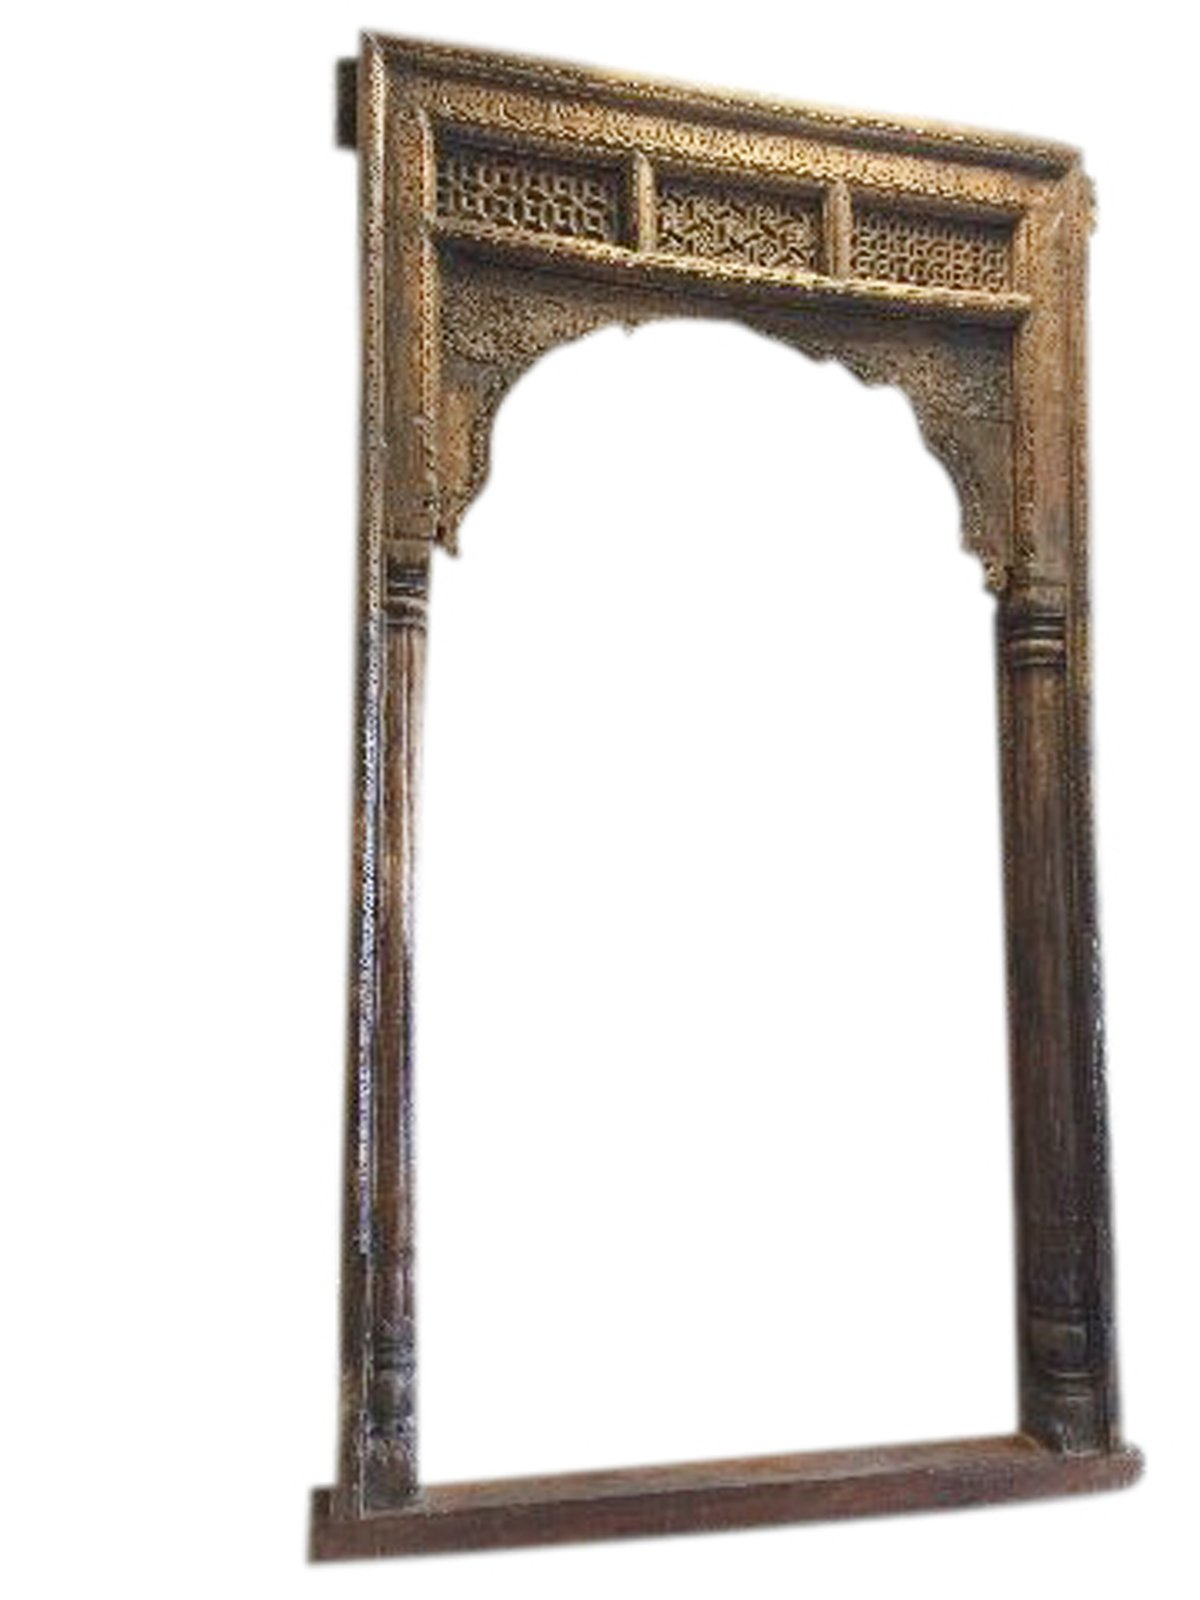 Antique Arch sHEKHWATI Teak Welcome Gate Headboard Hand Carved Vintage OLd World Architectural Design by Mogul Interior